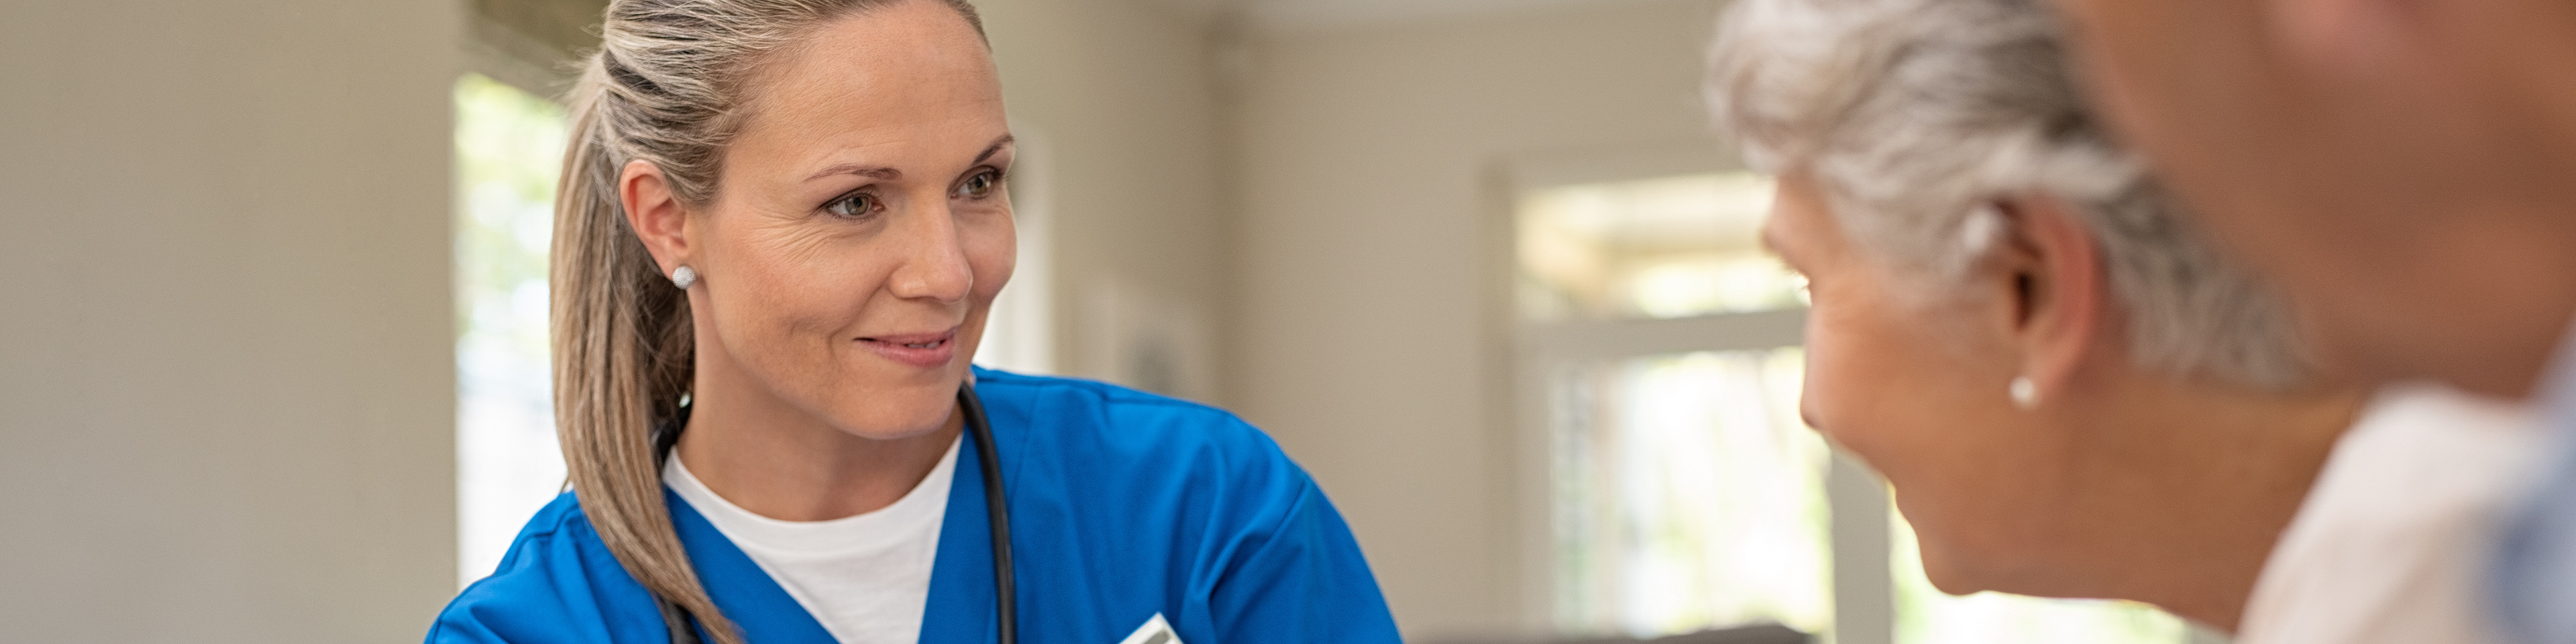 Do nurse manager caring behaviors influence the patient experience?